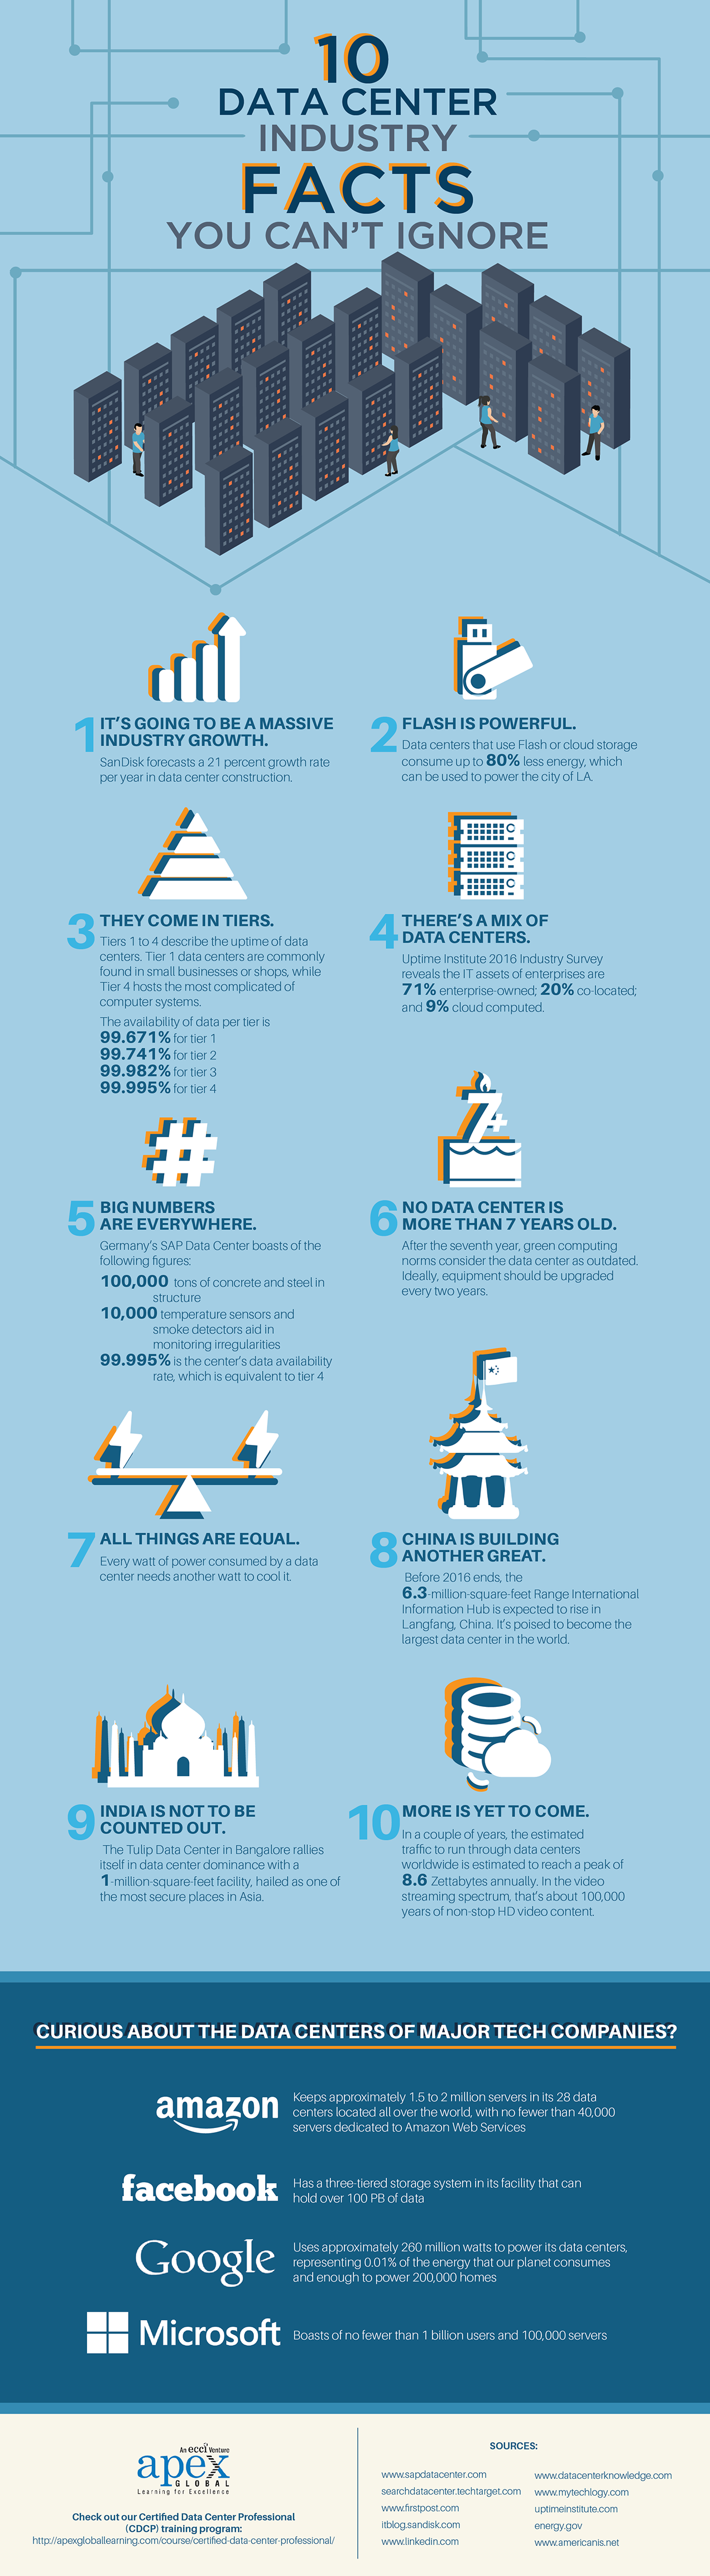 Data Center Industry Facts You Can't Ignore Infographic_rev1 (1)